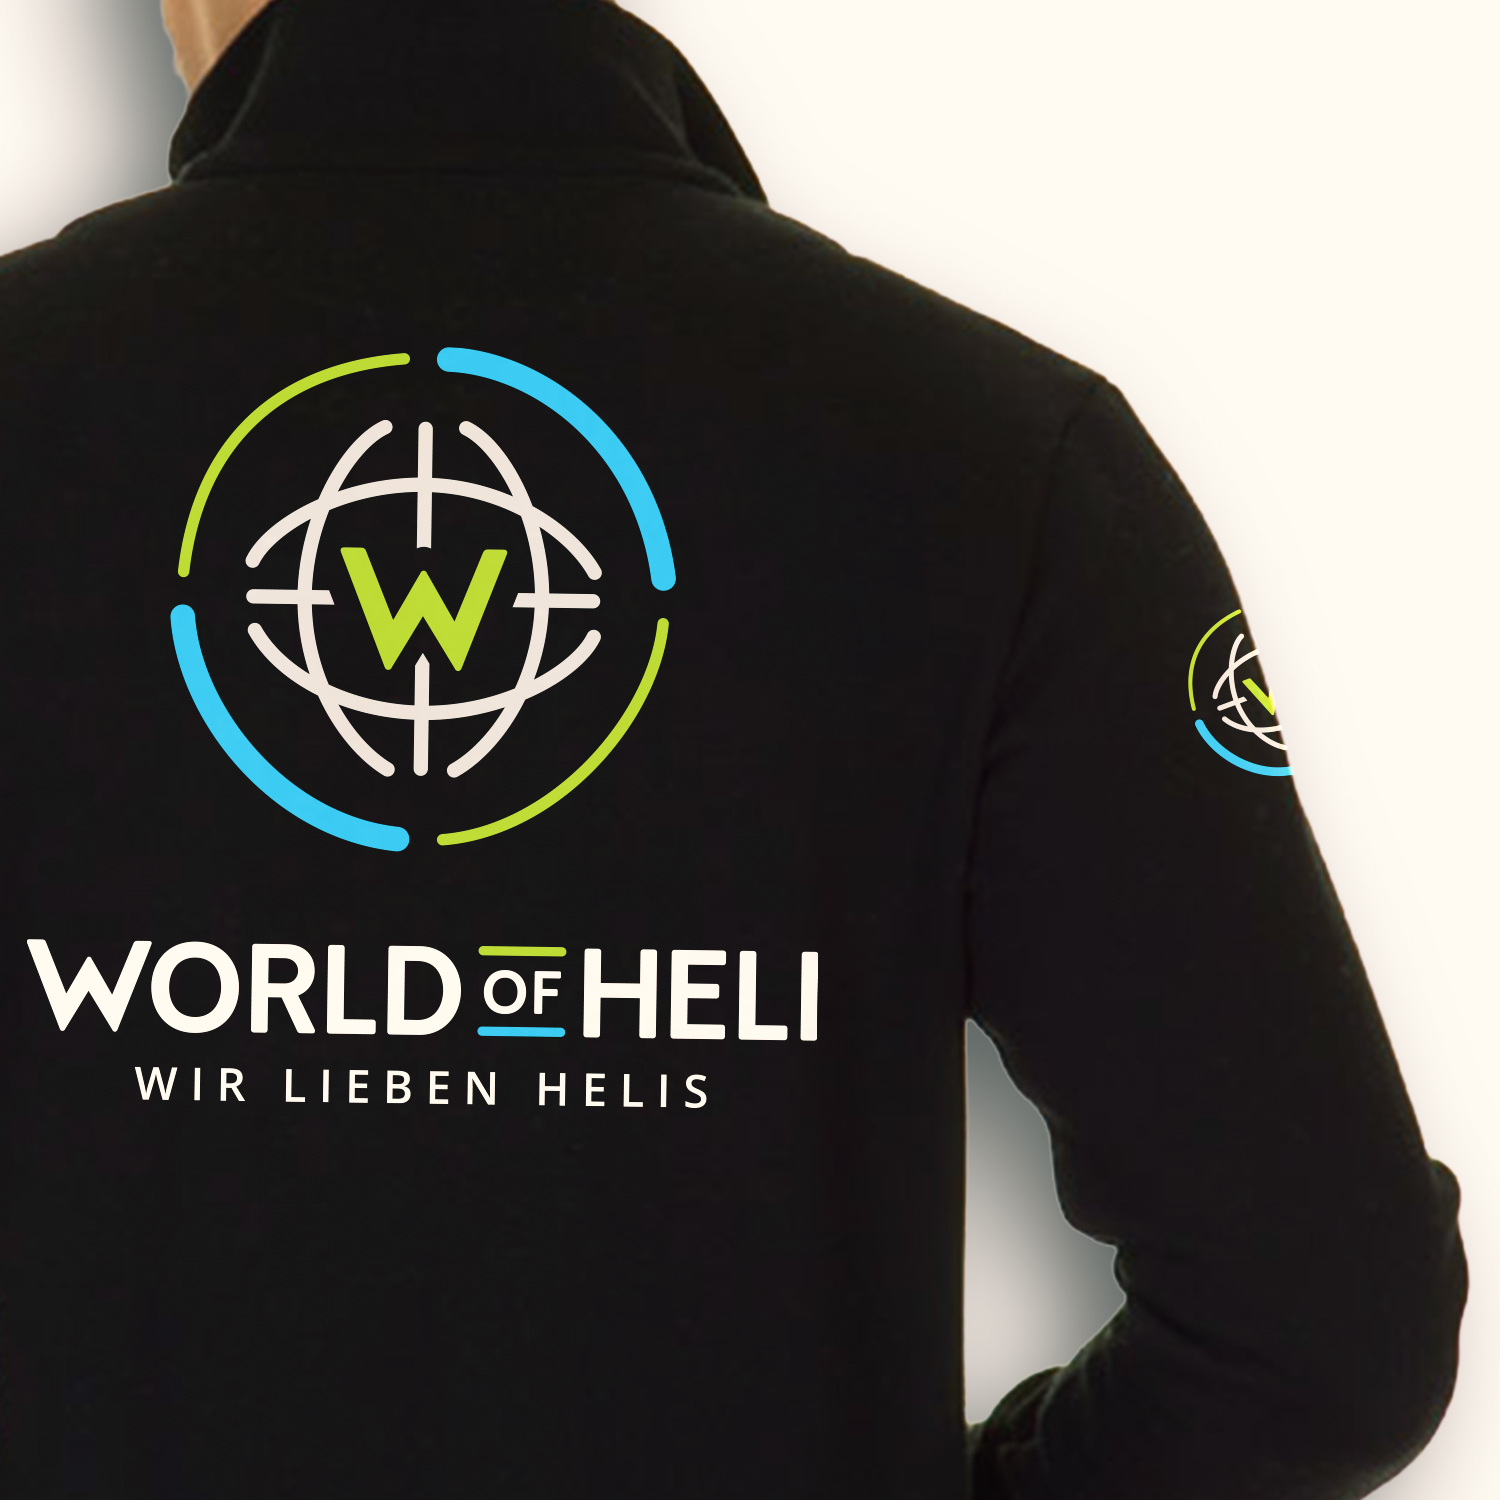 woh-sweater-2015-back.jpg